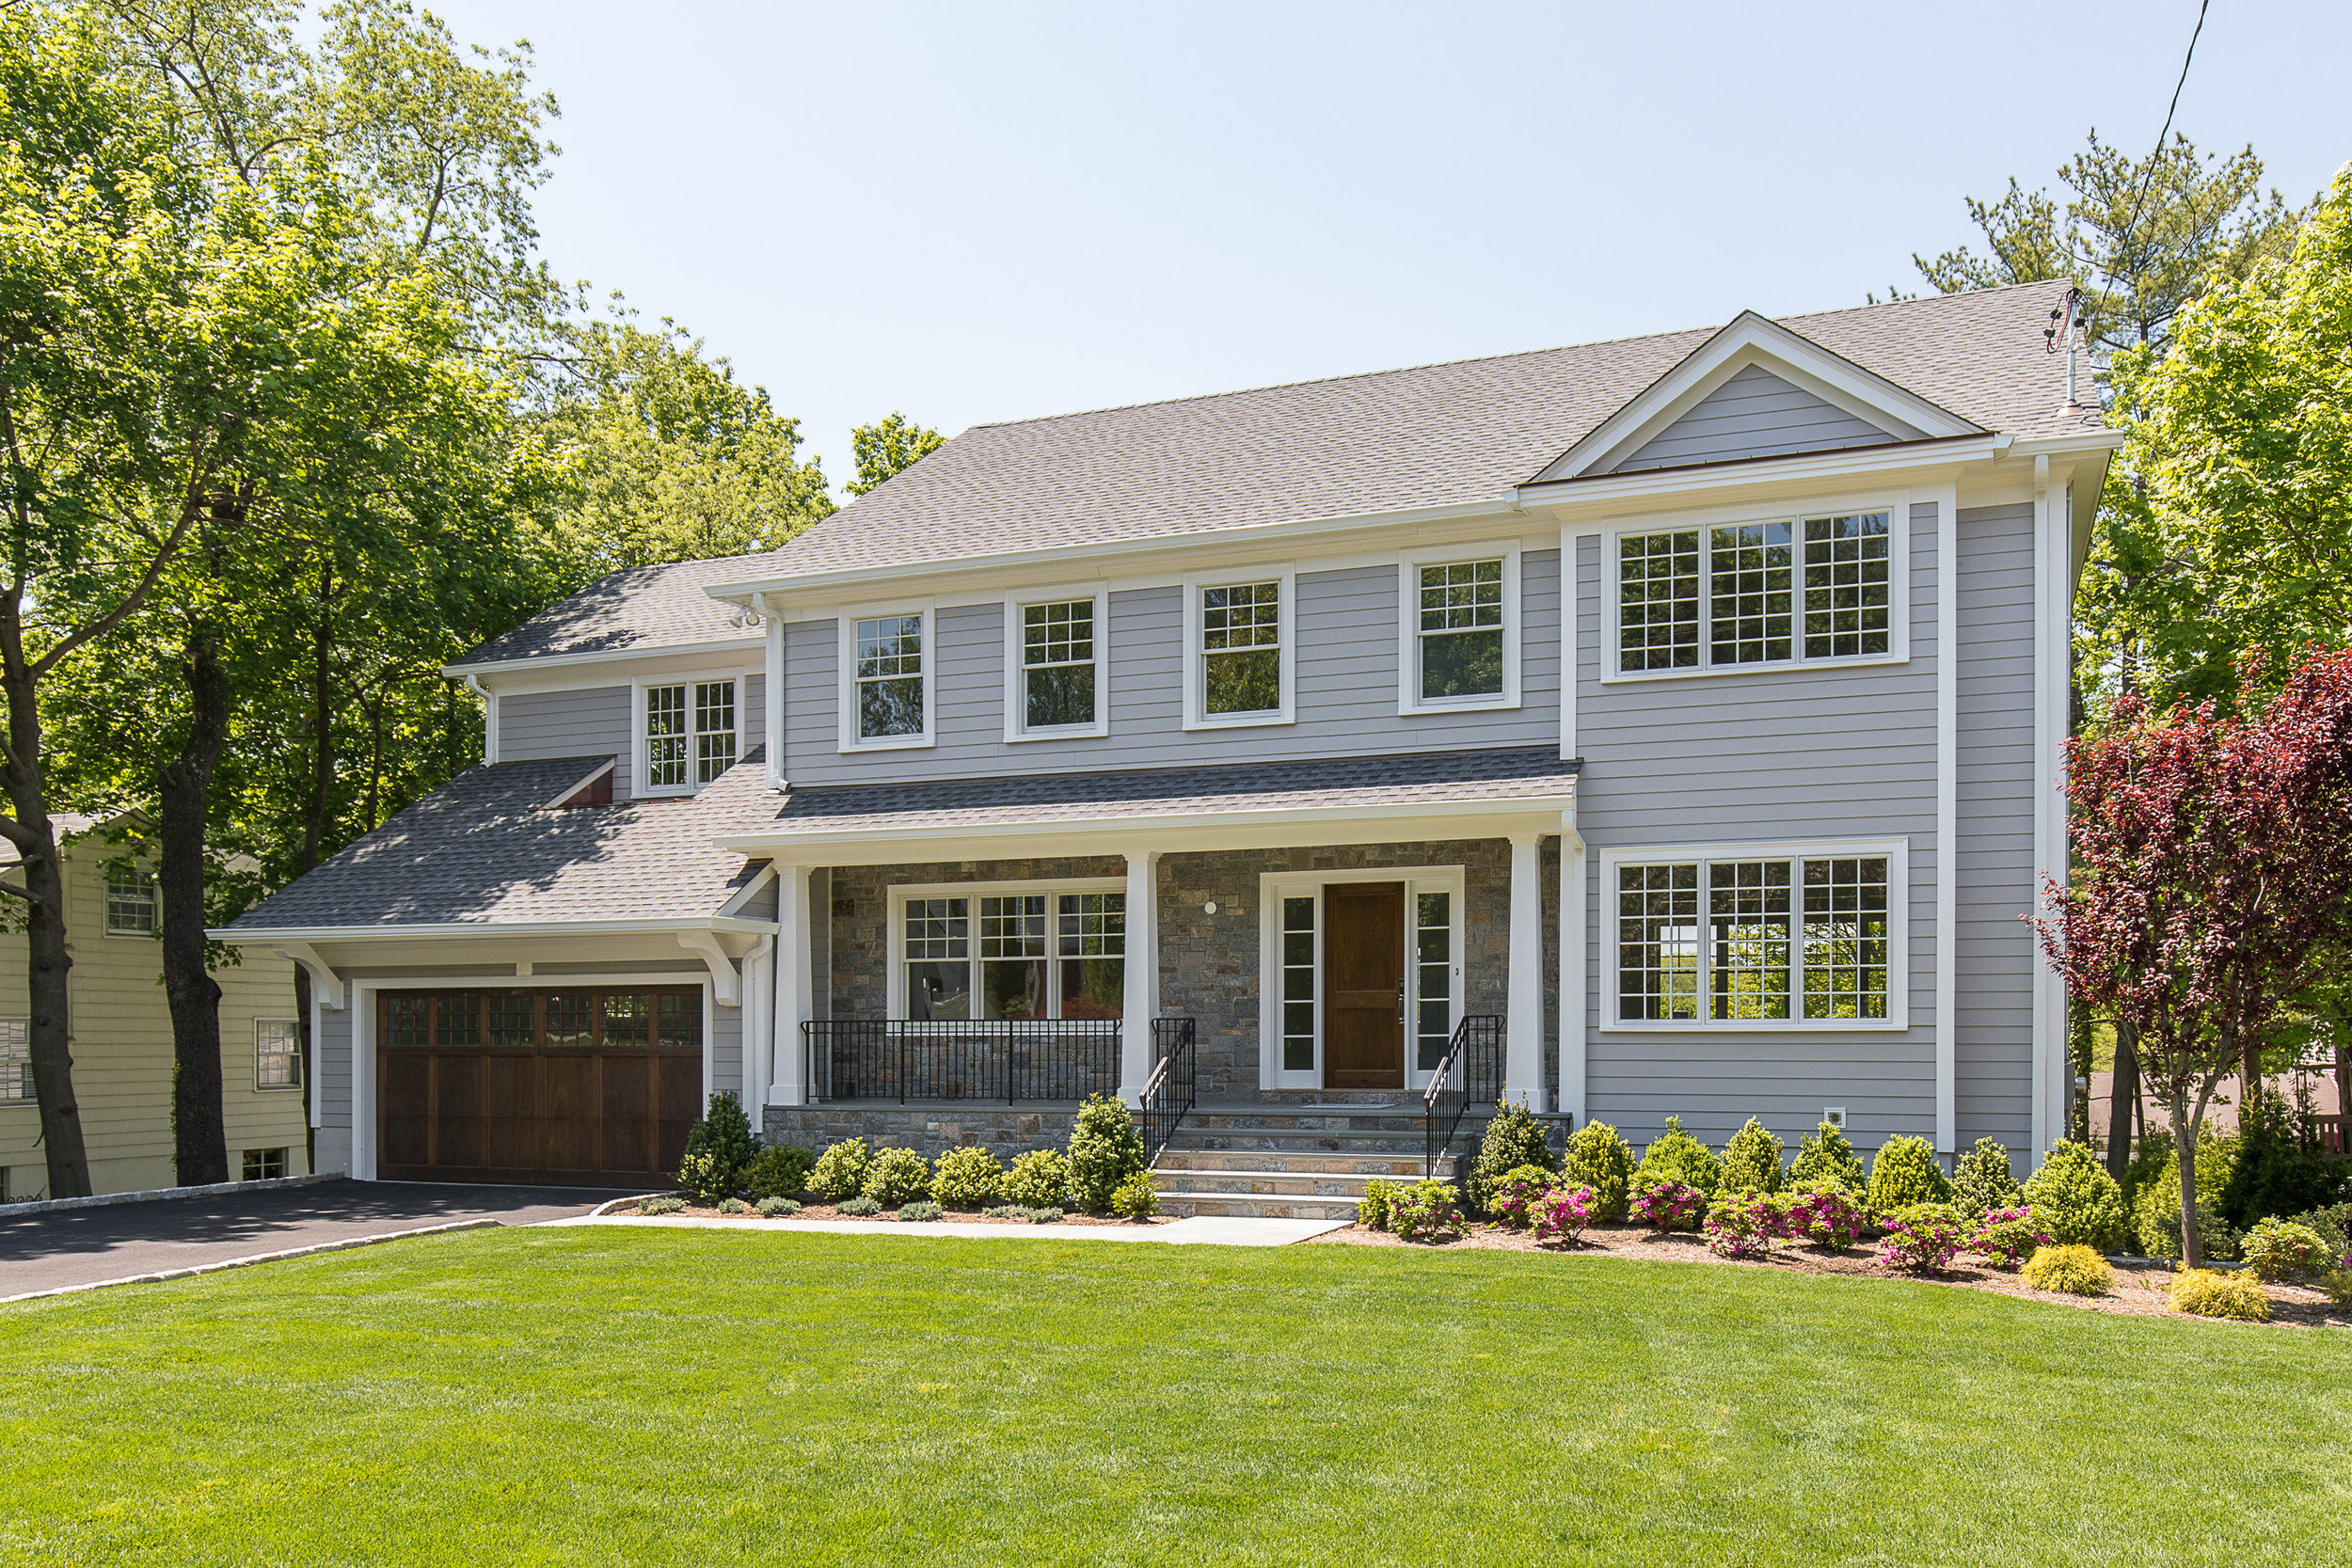 SOLD  12 Carthage Lane Scarsdale, NY. New Construction. Represented the Seller as the Listing Agent  (2017)